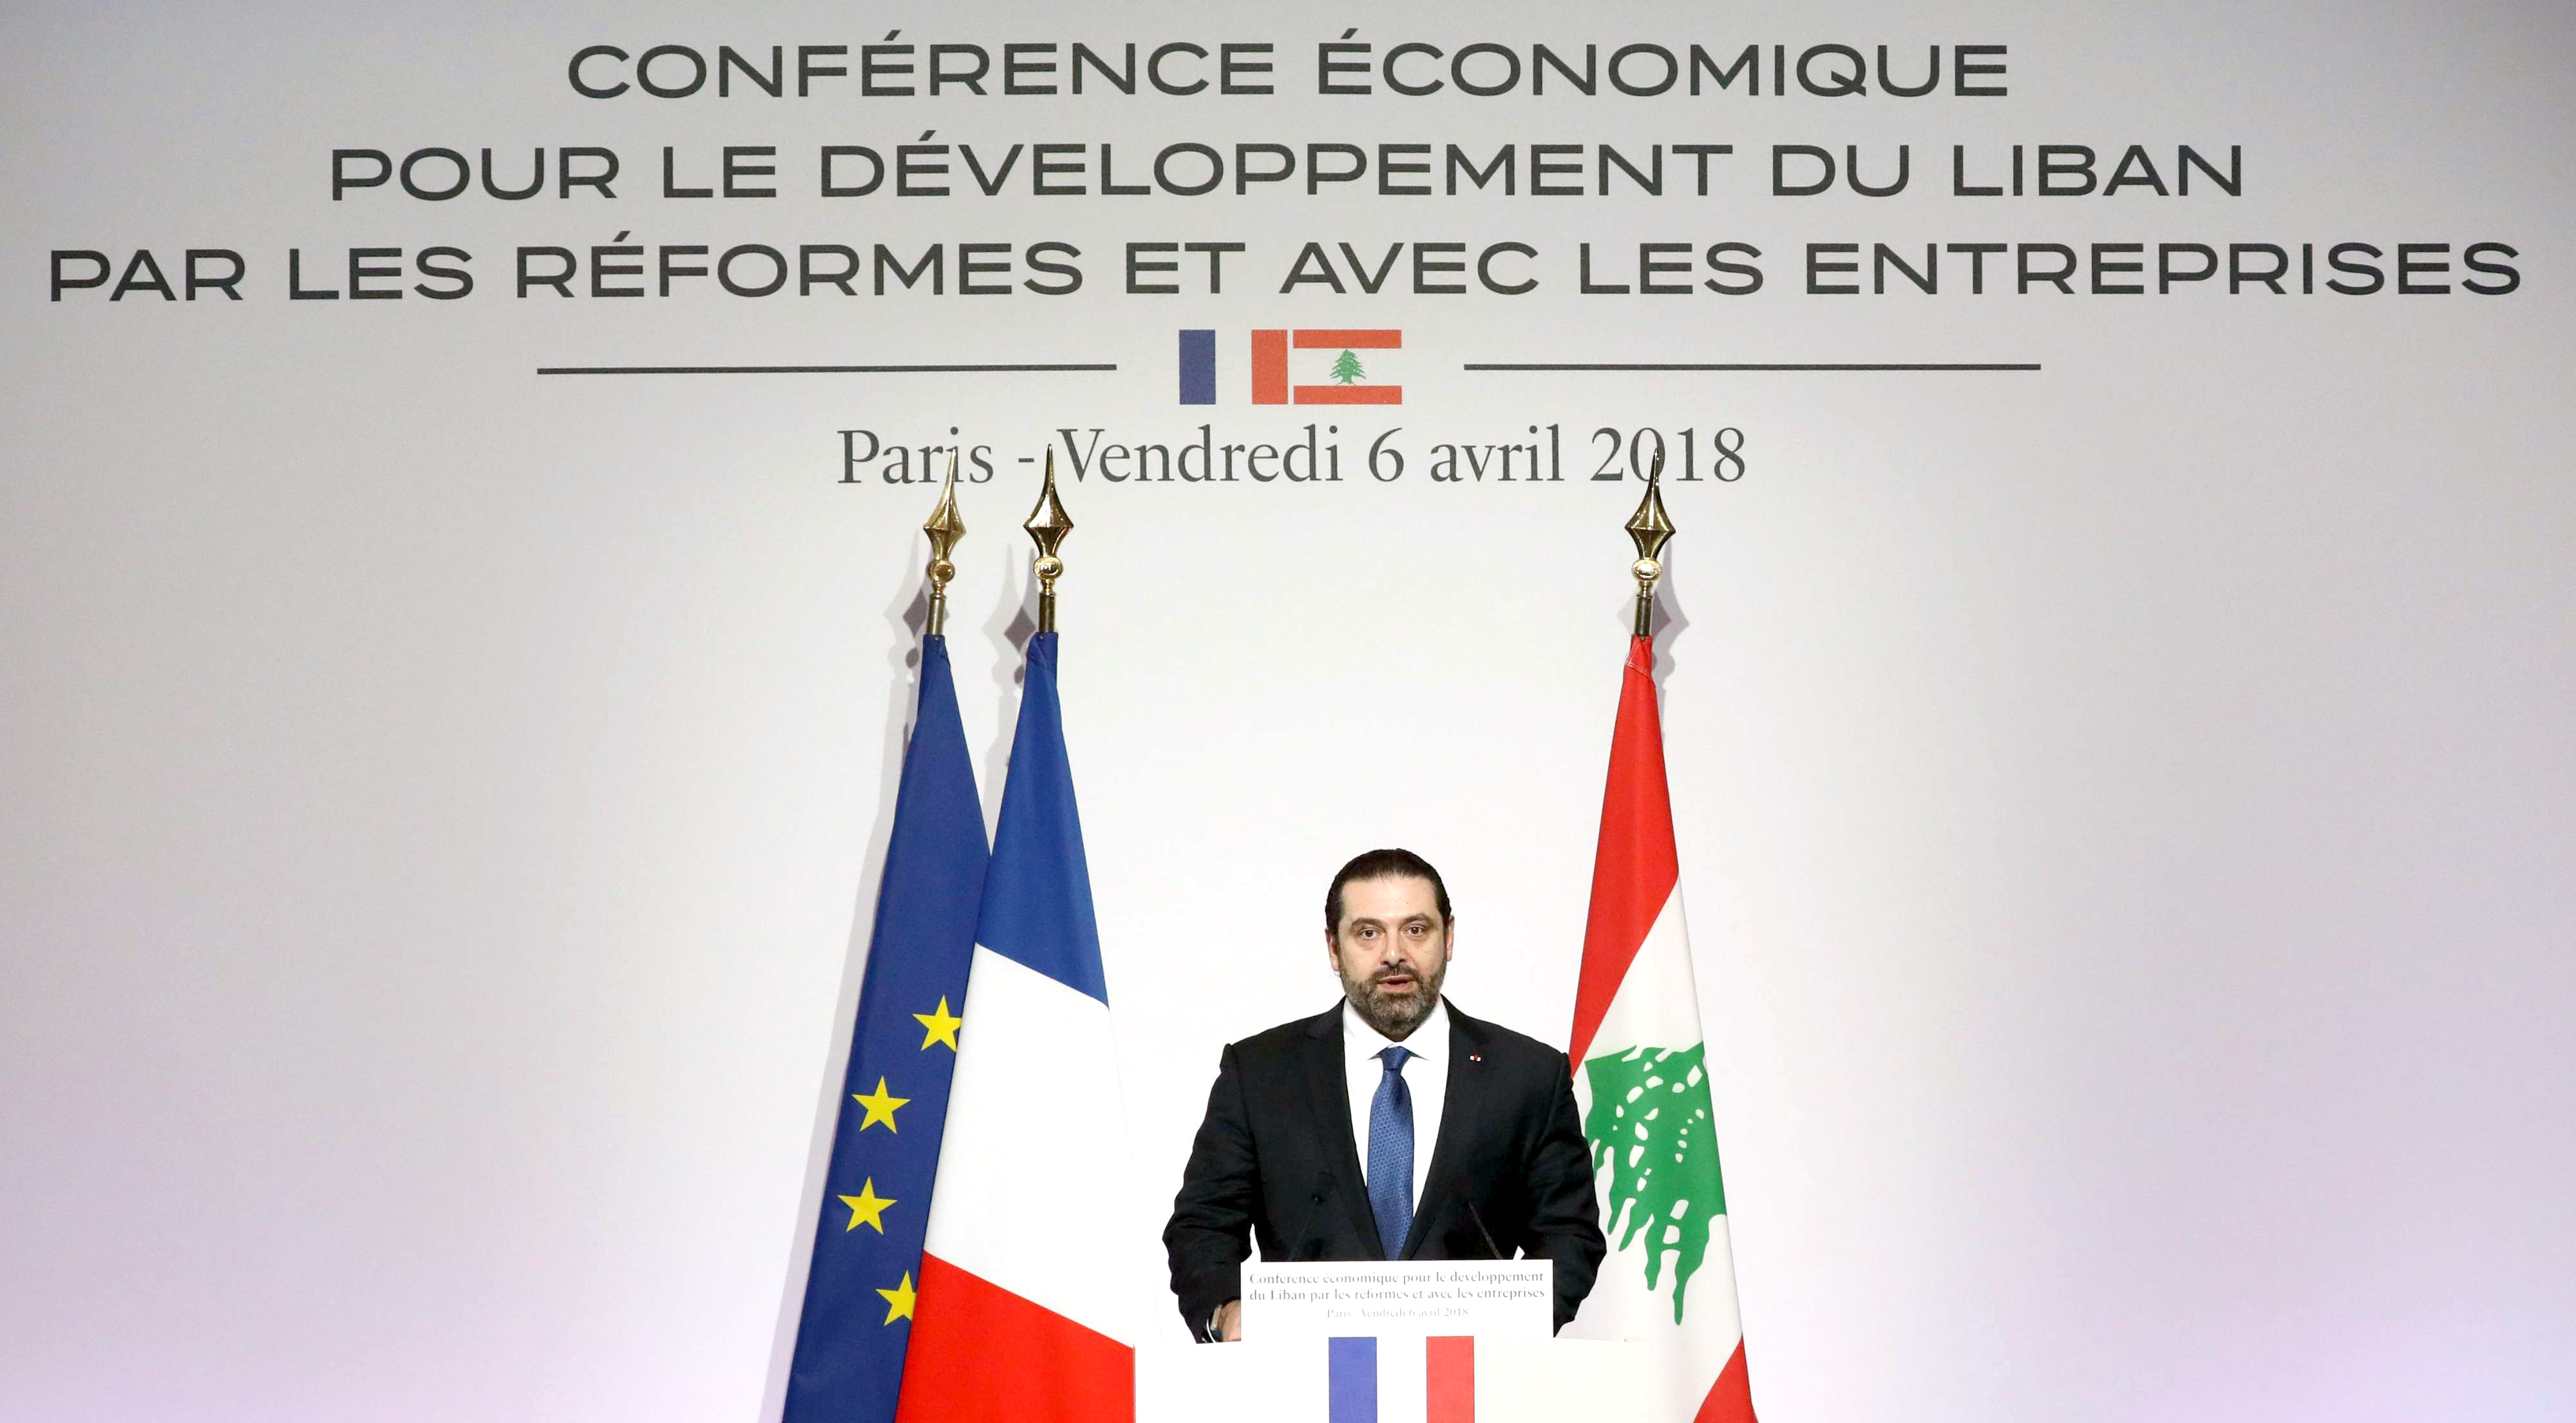 Varnishing over the cracks. Lebanese Prime Minister Saad Hariri addresses the Cedre conference at the Foreign Affairs Ministry in Paris, on April 6. (AFP)